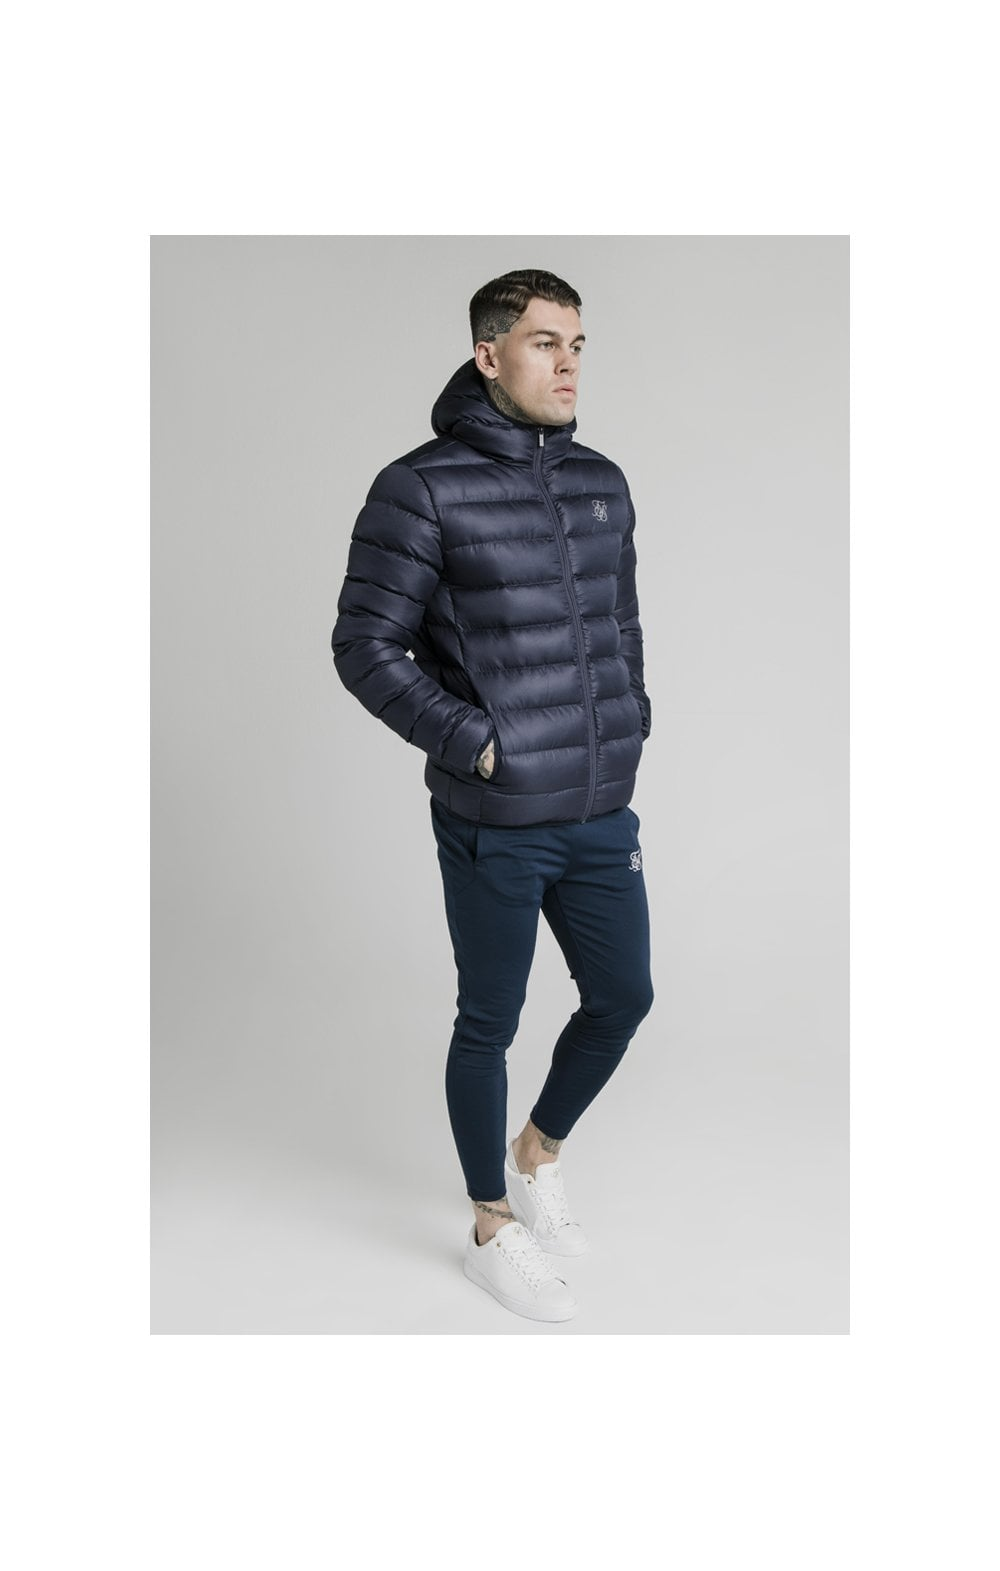 SikSilk Atmosphere Jacket - Navy (2)